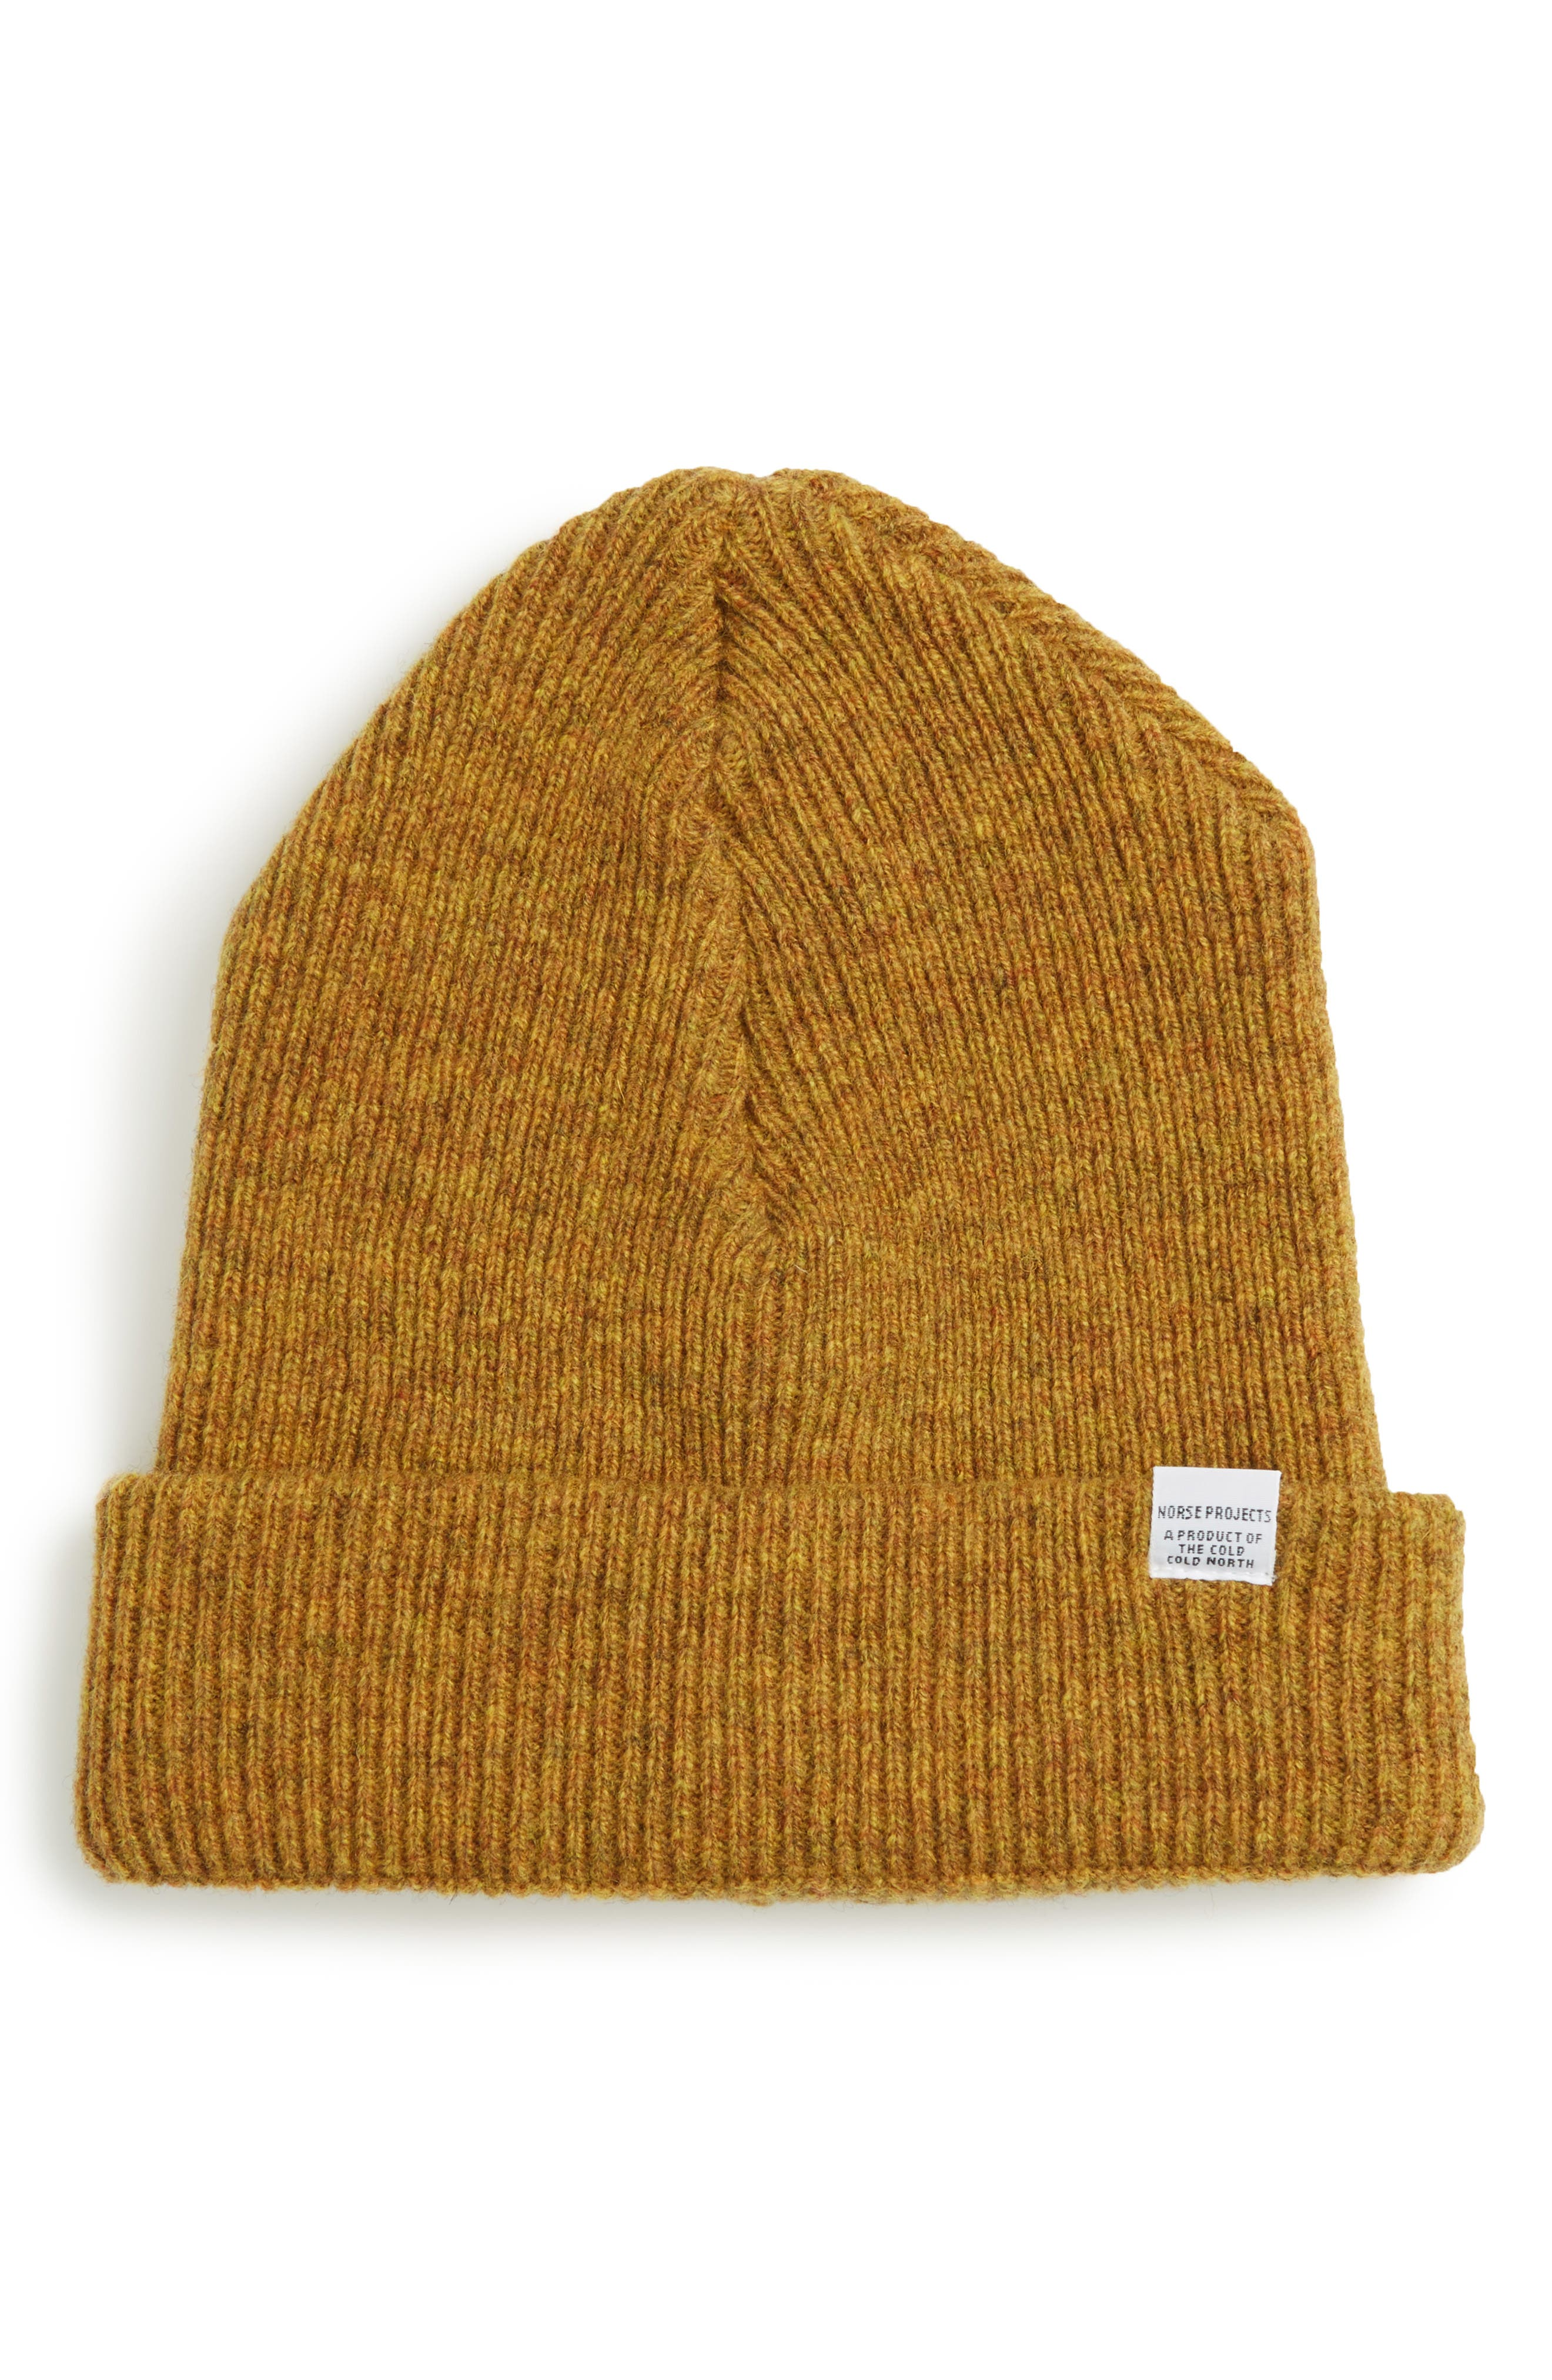 Alternate Image 1 Selected - Norse Project Wool Knit Cap